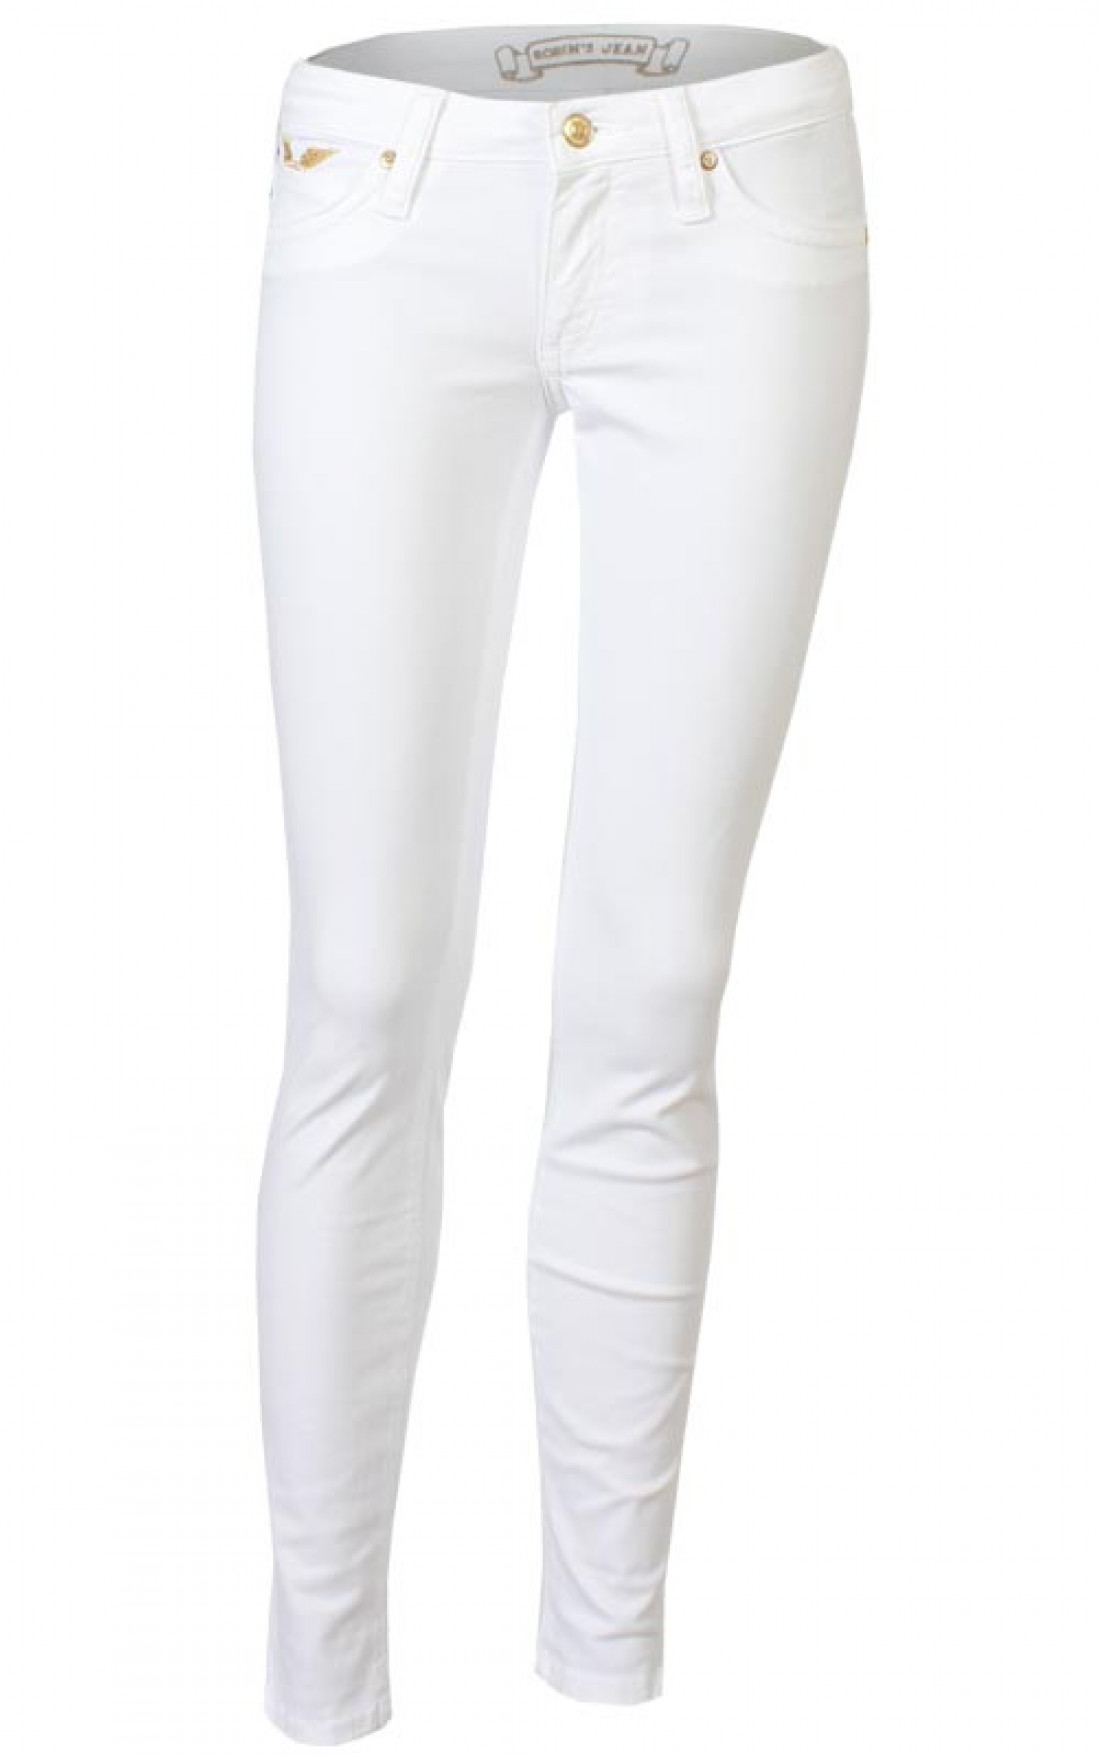 Find your perfect fit at Matalan's jeans shop with everyday styles from skinny jeans & bootcut jeans to comfy jeggings & high waisted black jeans.